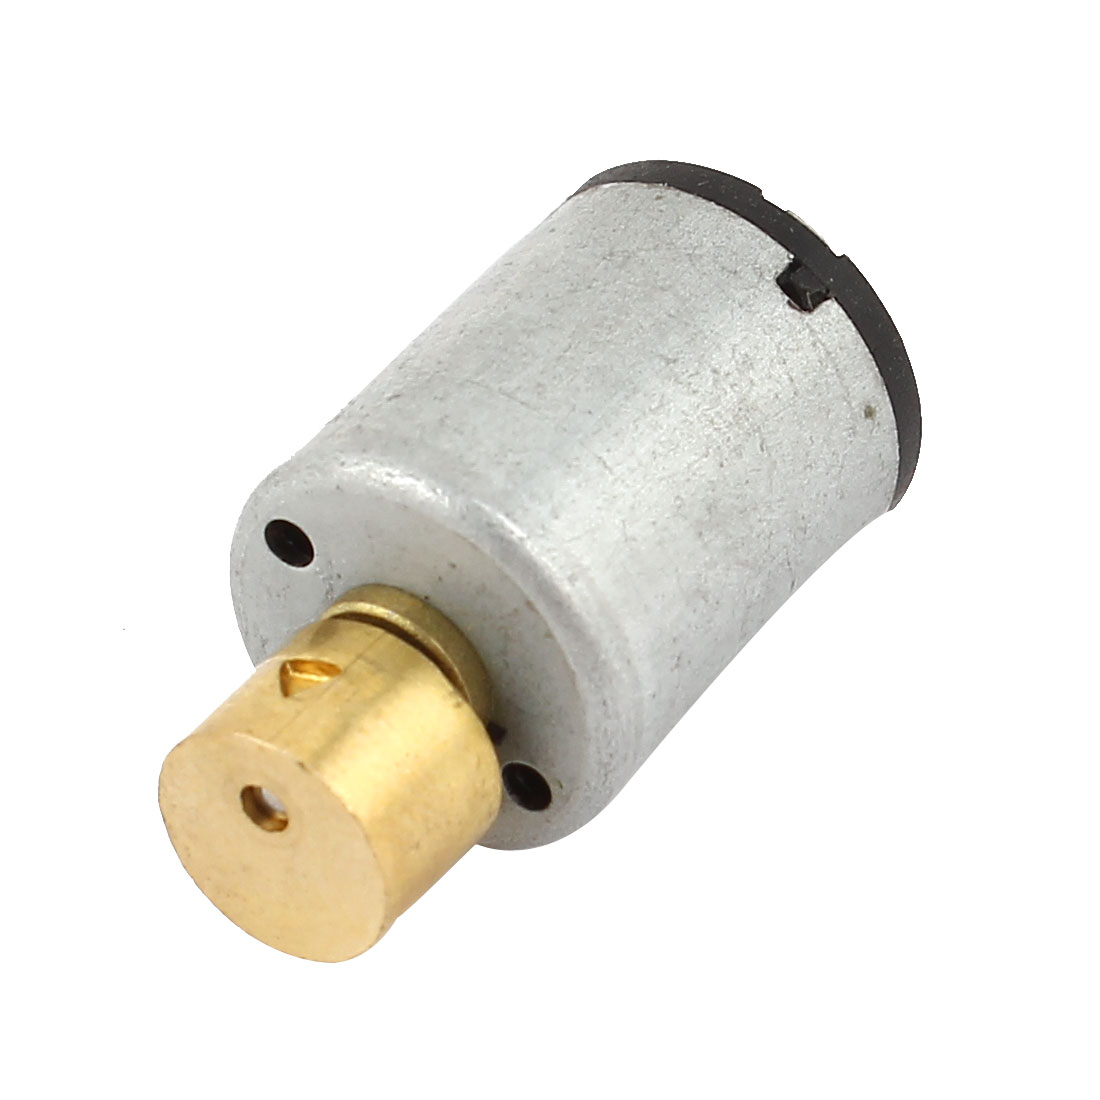 Replacement Part 8000-10000RPM DC 3-6V Coreless Vibration Vibrating Motors